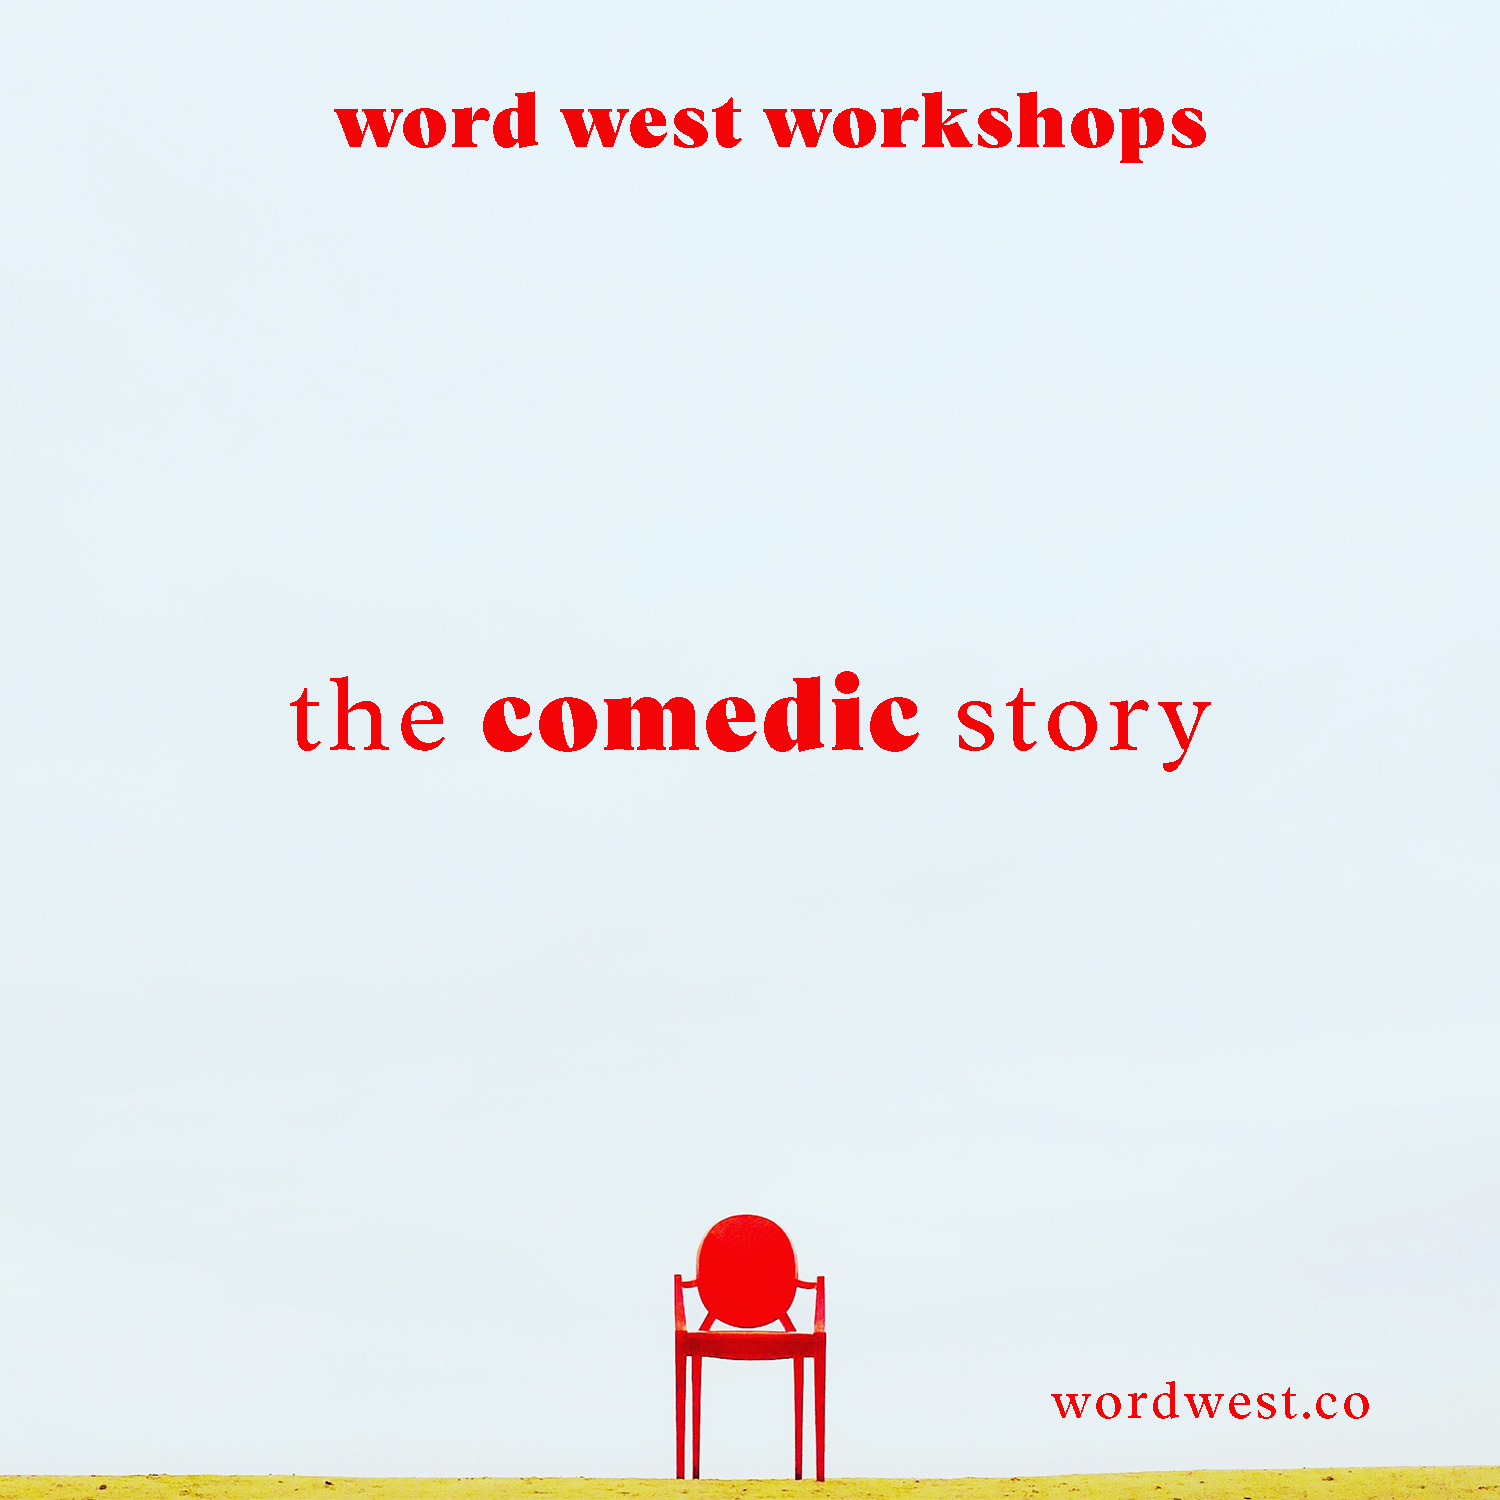 short fiction workshop 4: the comedic story